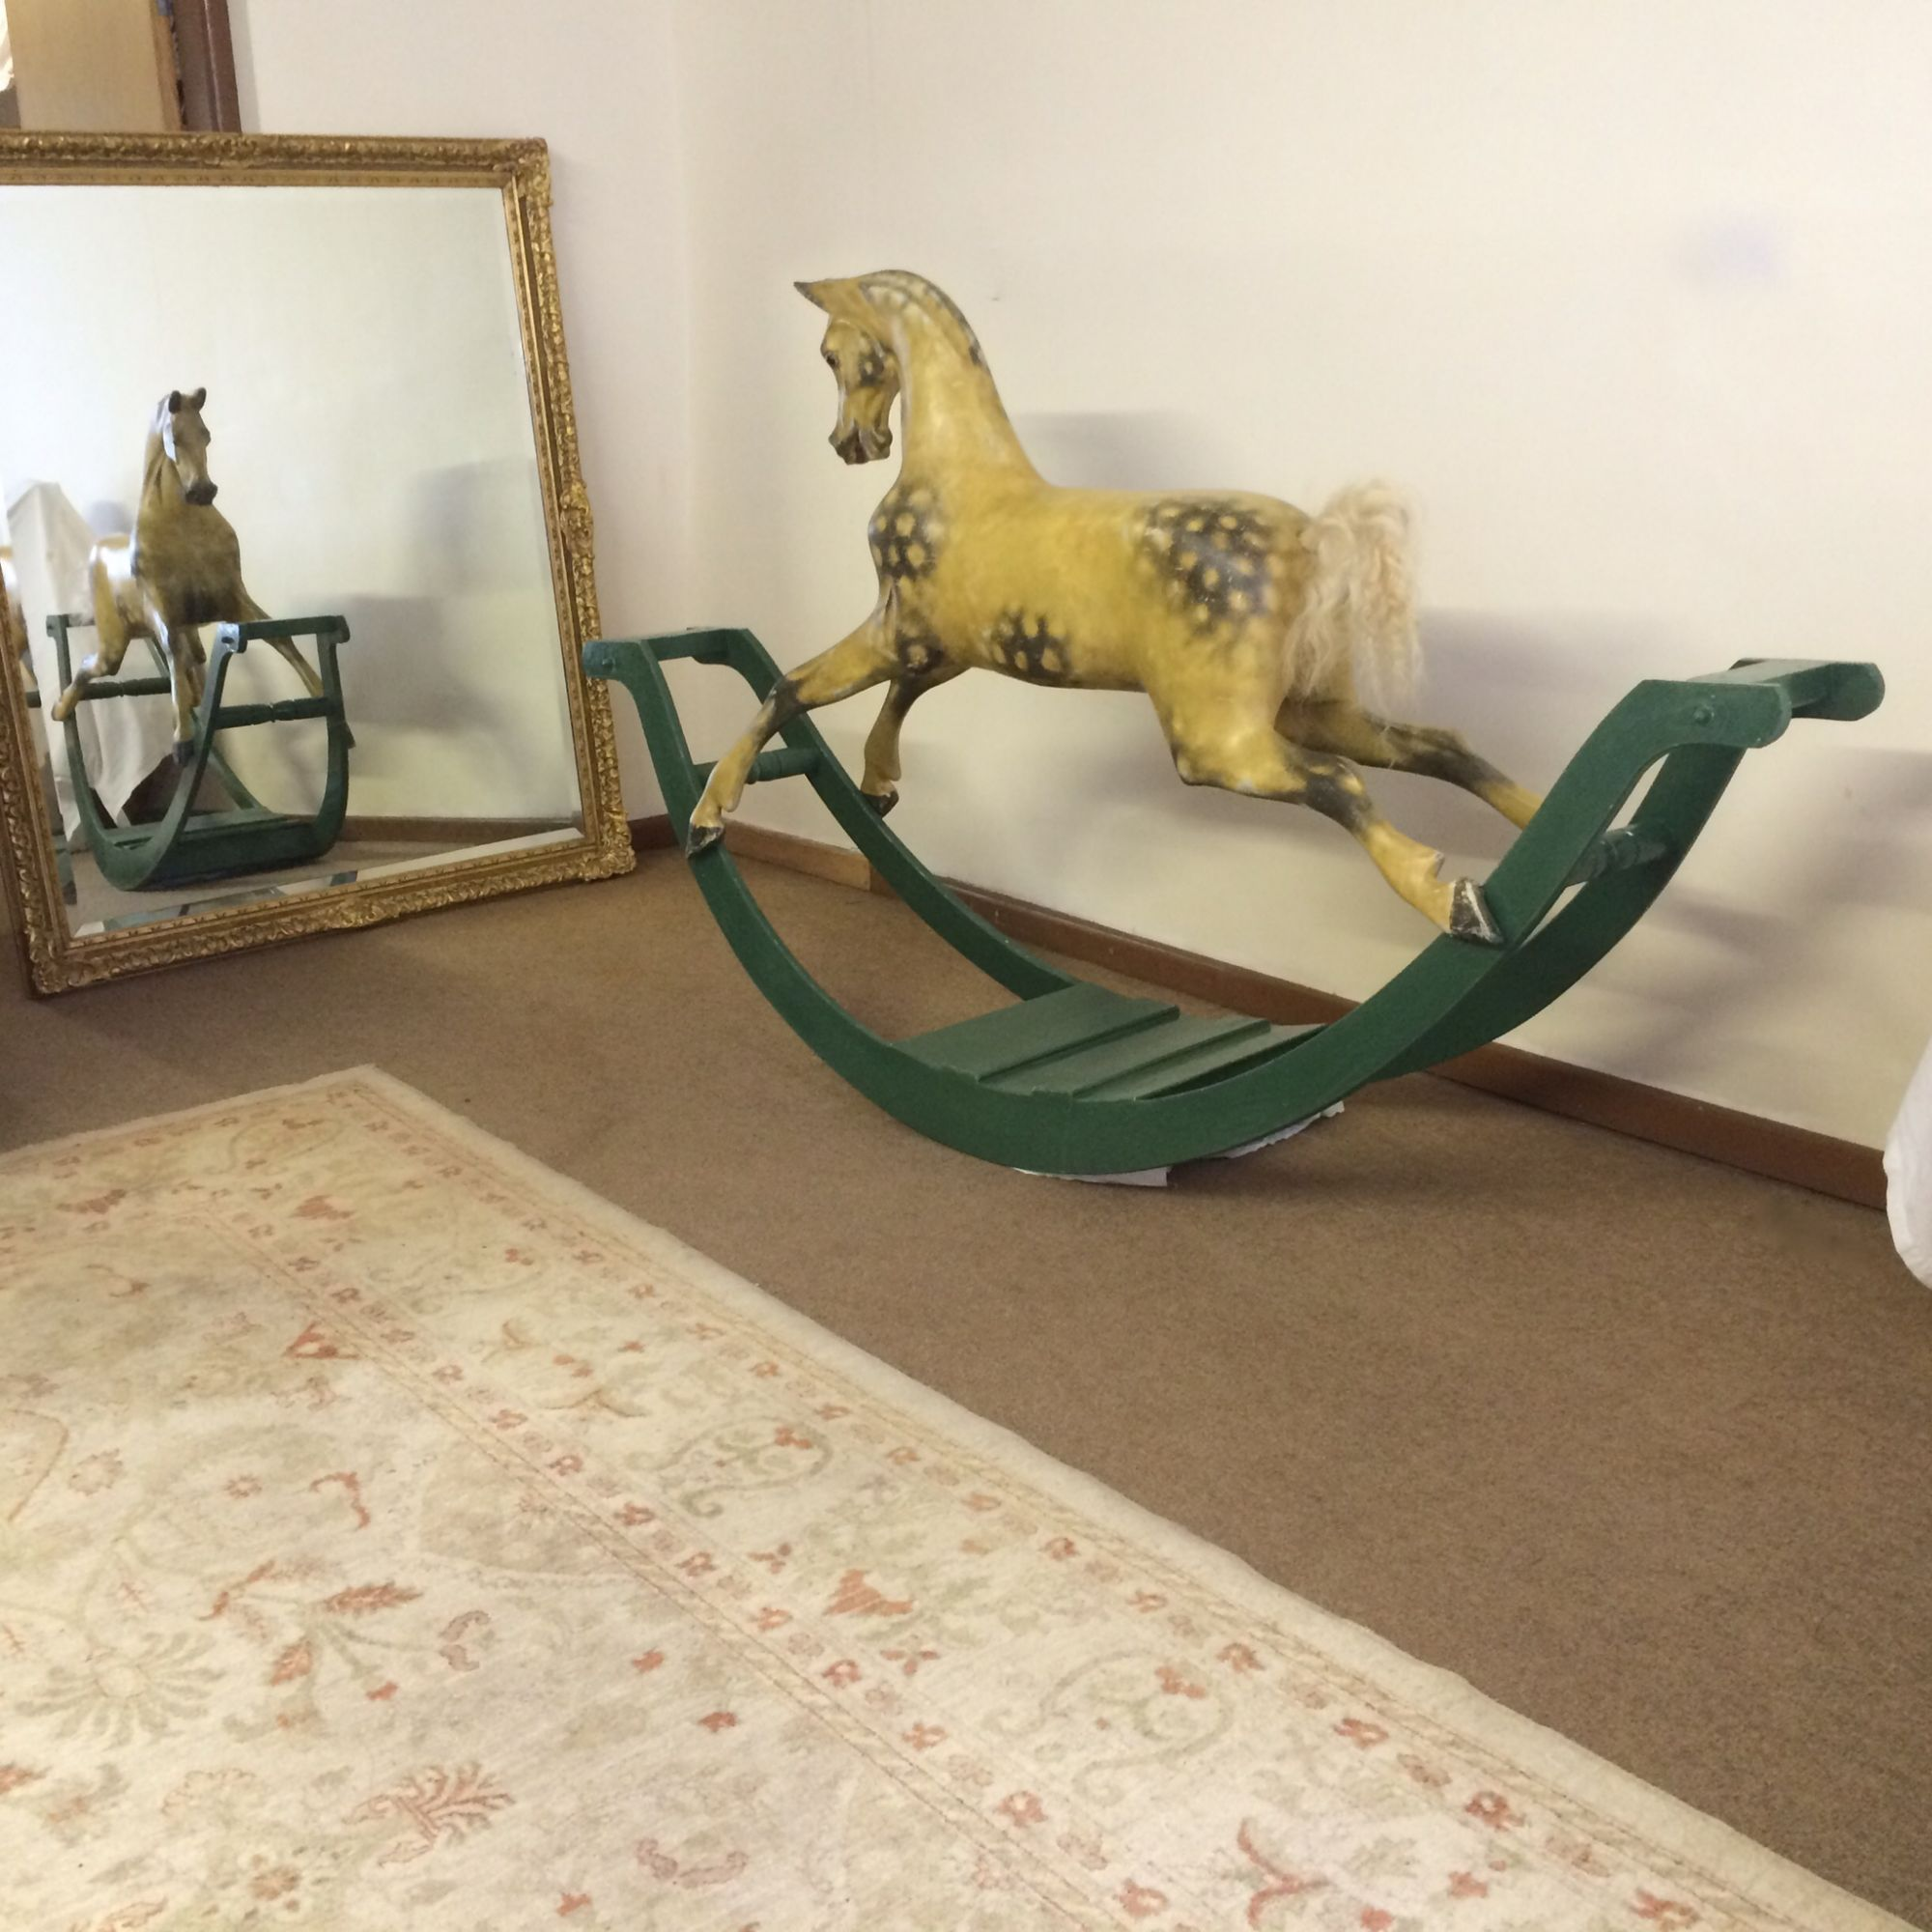 The Eventer Haddon rocking horse now repainted to look old / antique.